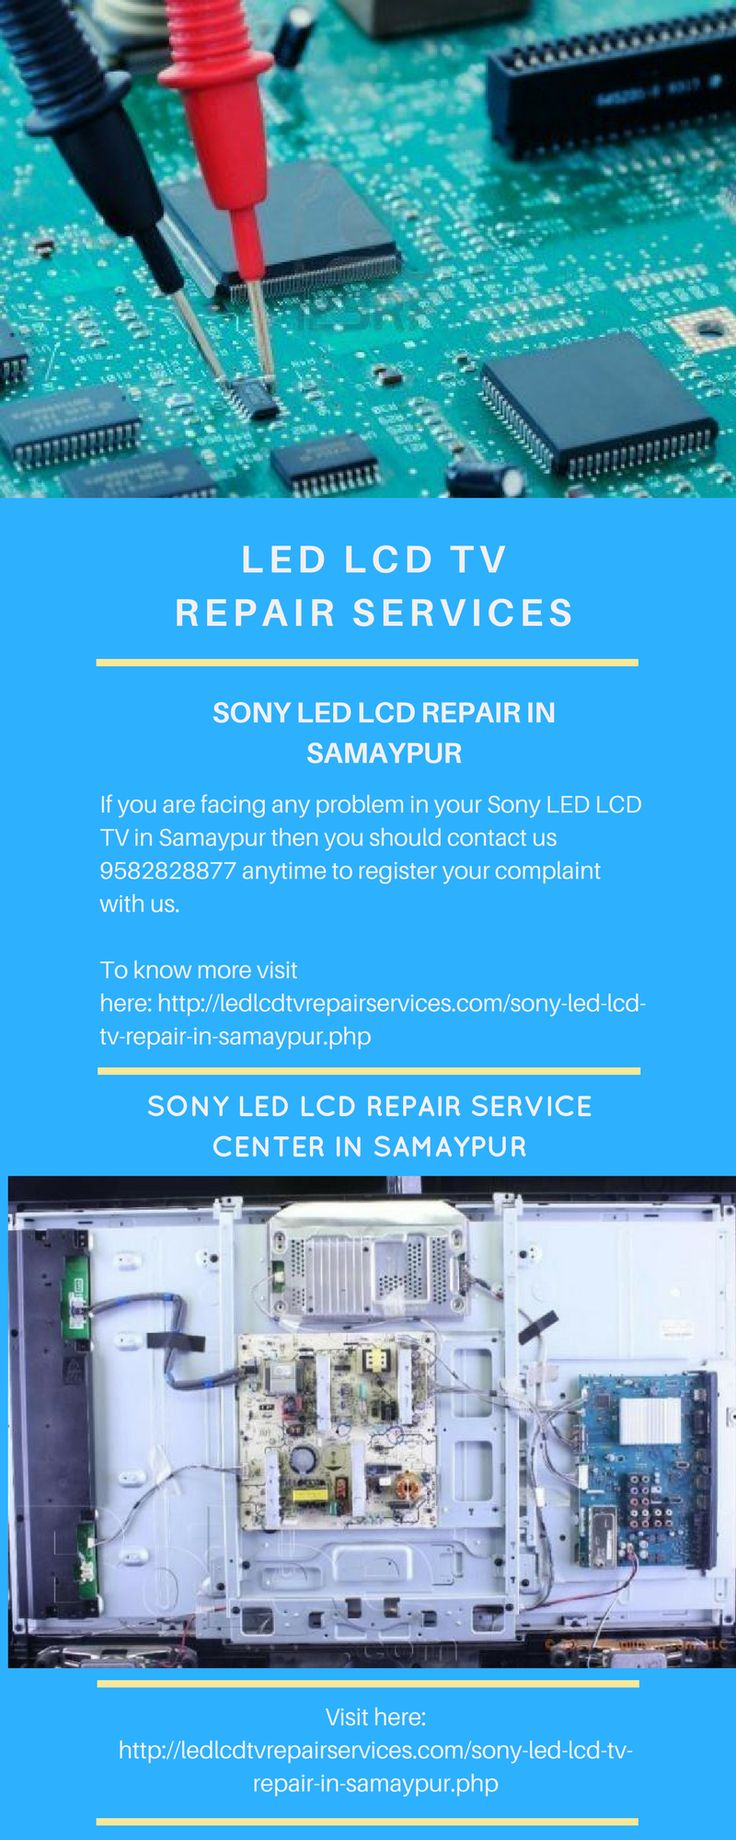 Sony LED LCD TV Repair Services Center in Samaypur offer quality and effective services of repairing any kind of LEDs, LCDs tv's at affordable price.